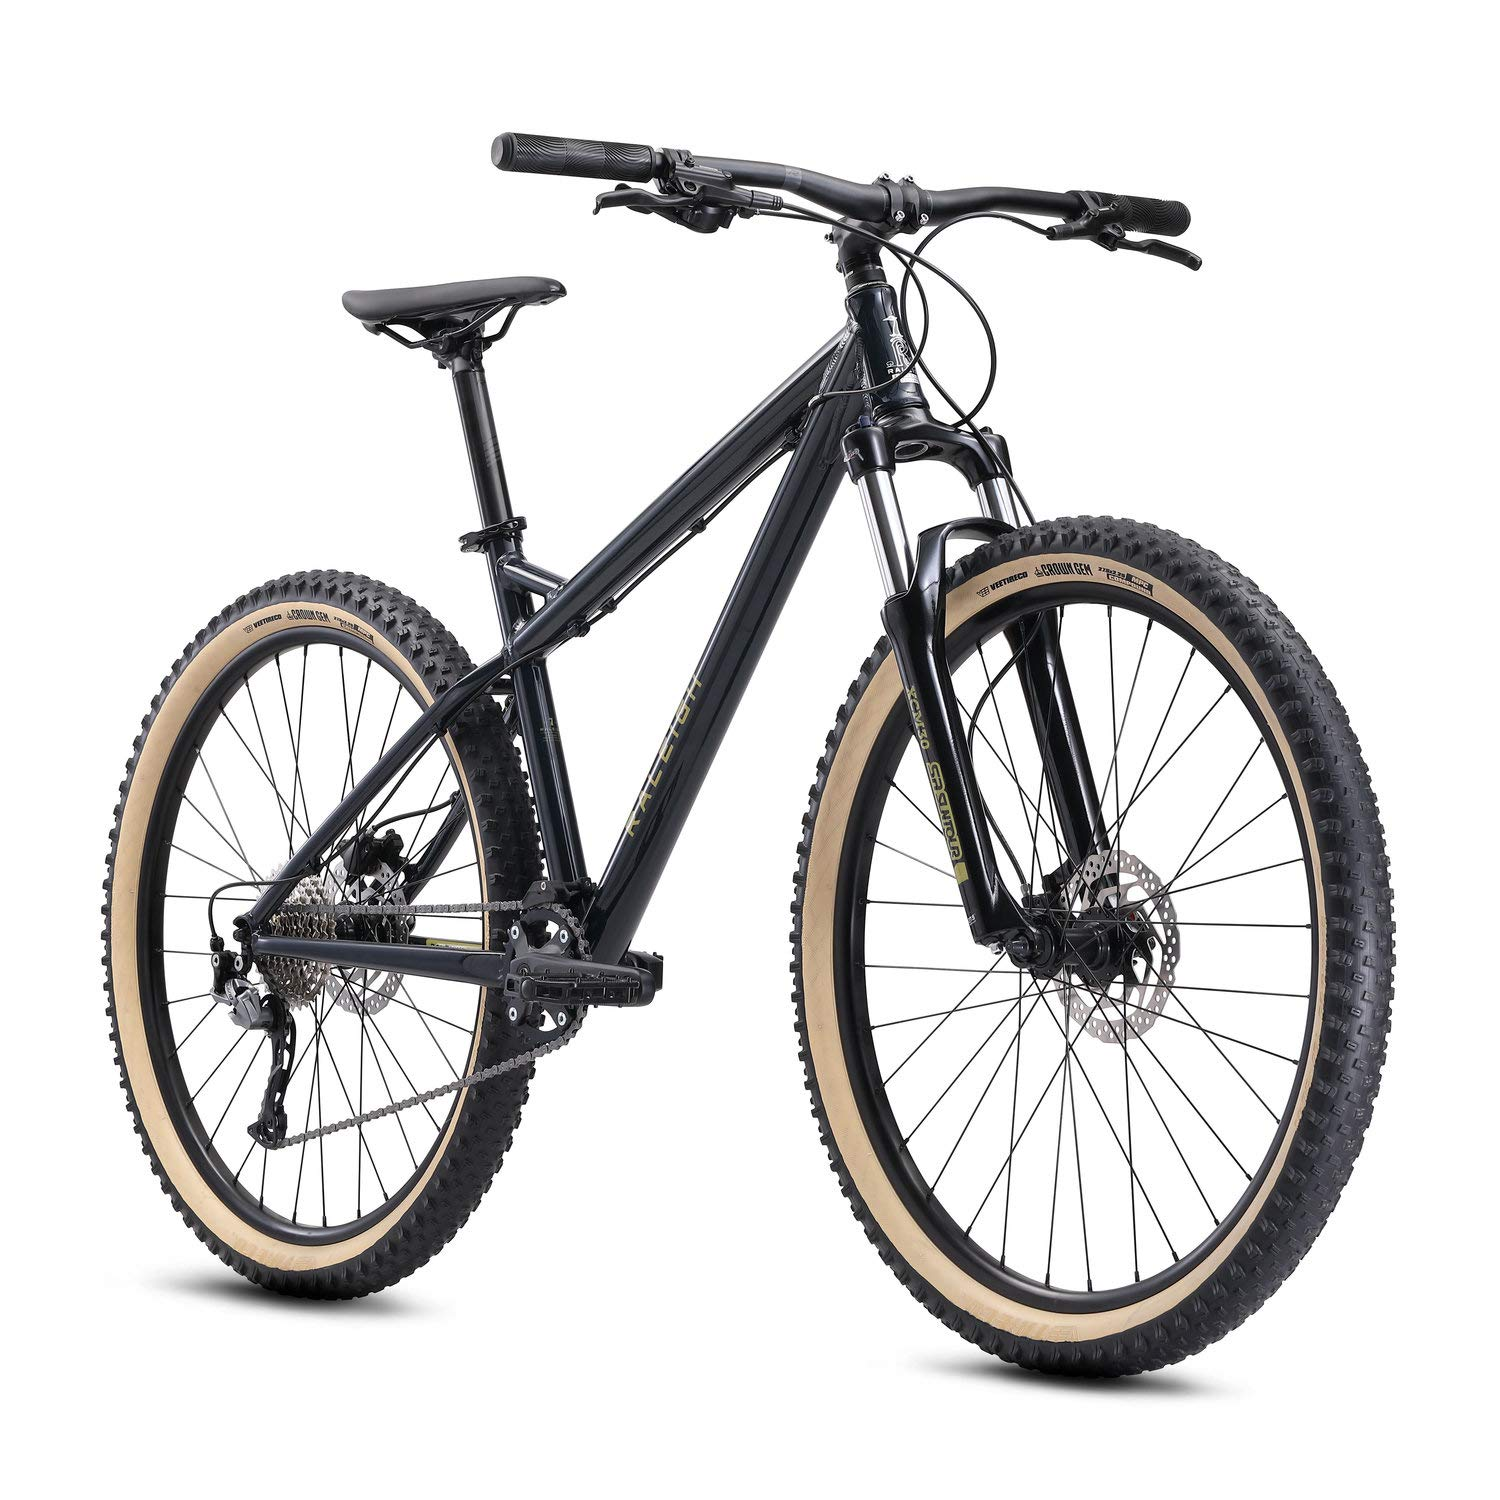 Raleigh Bicycles Tokul 2 Hardtail Mountain Bike